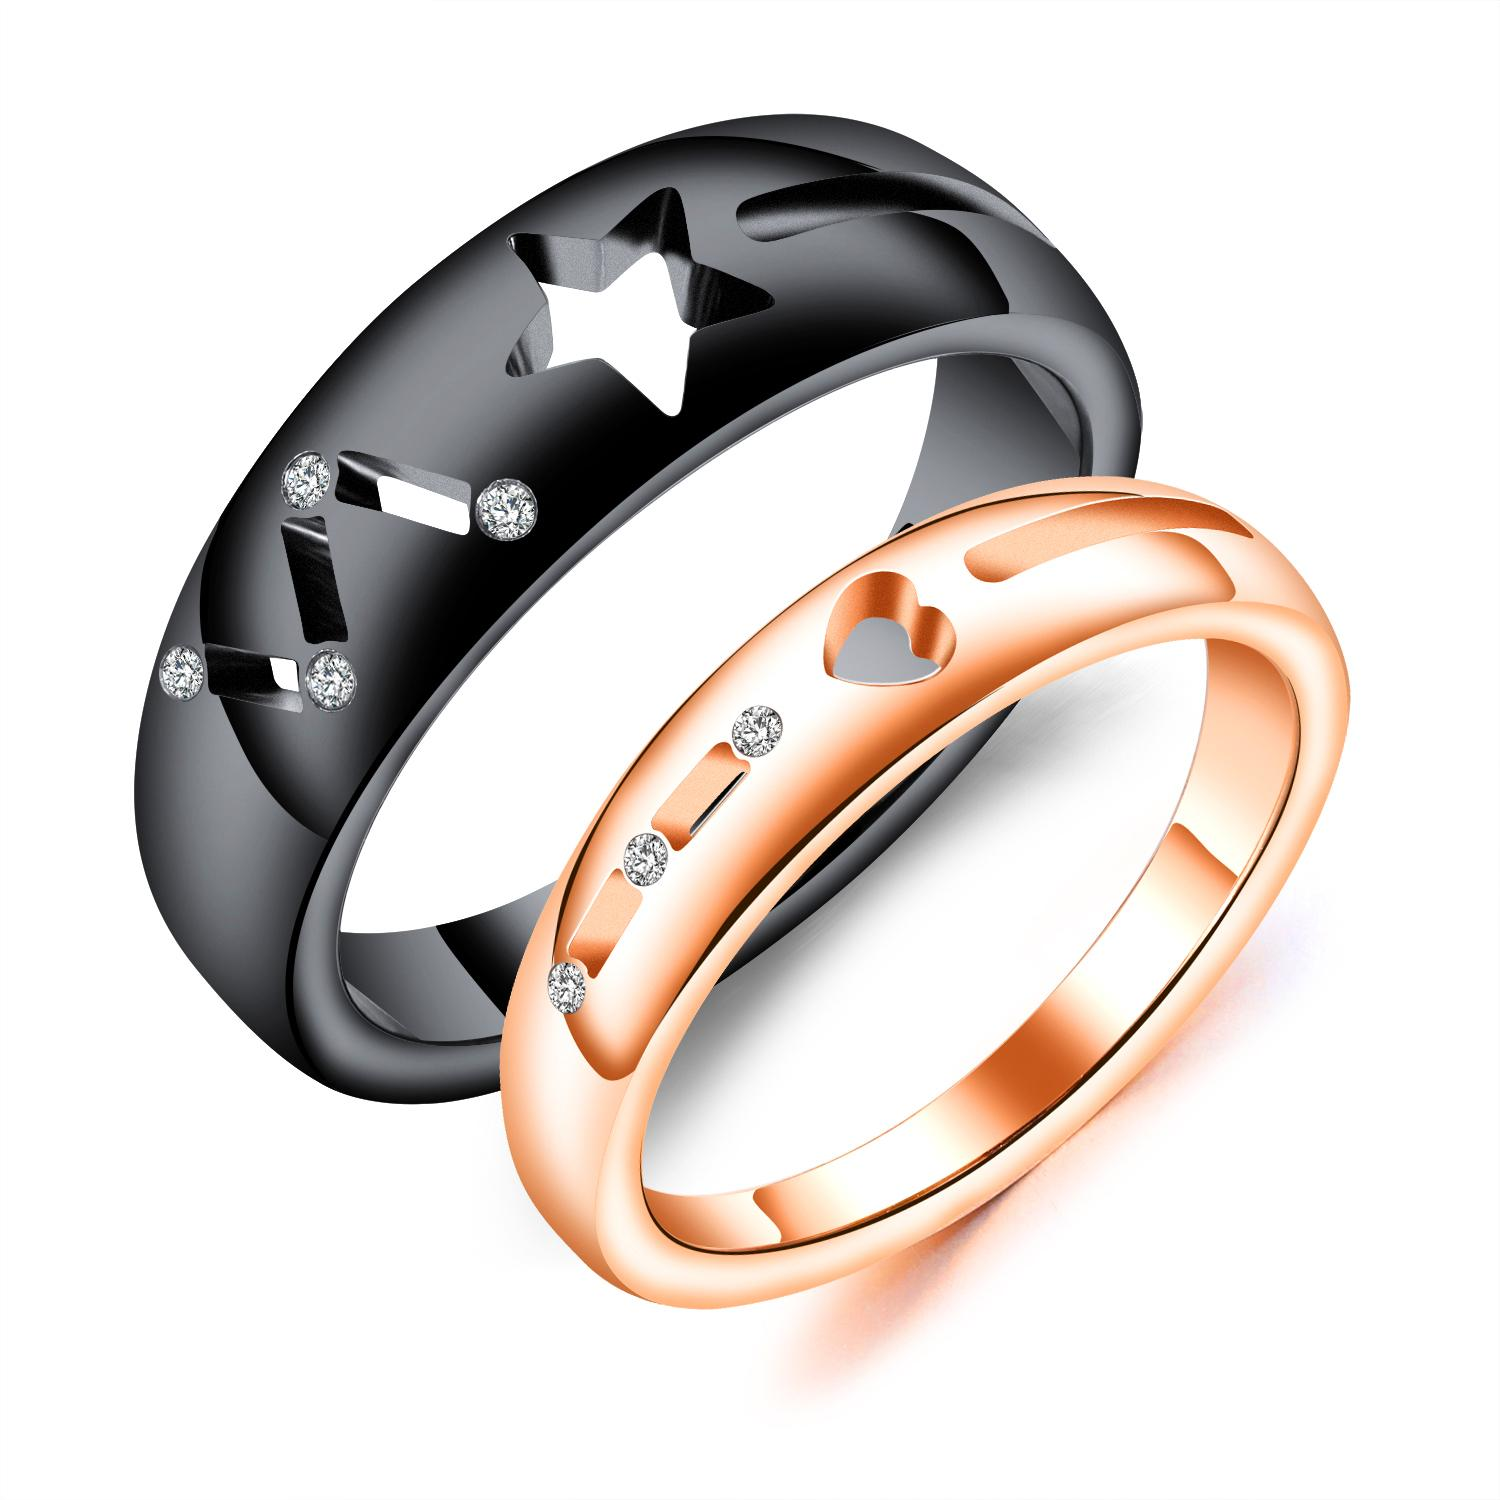 wedding plated rings white engagement gold couple beautifully silver